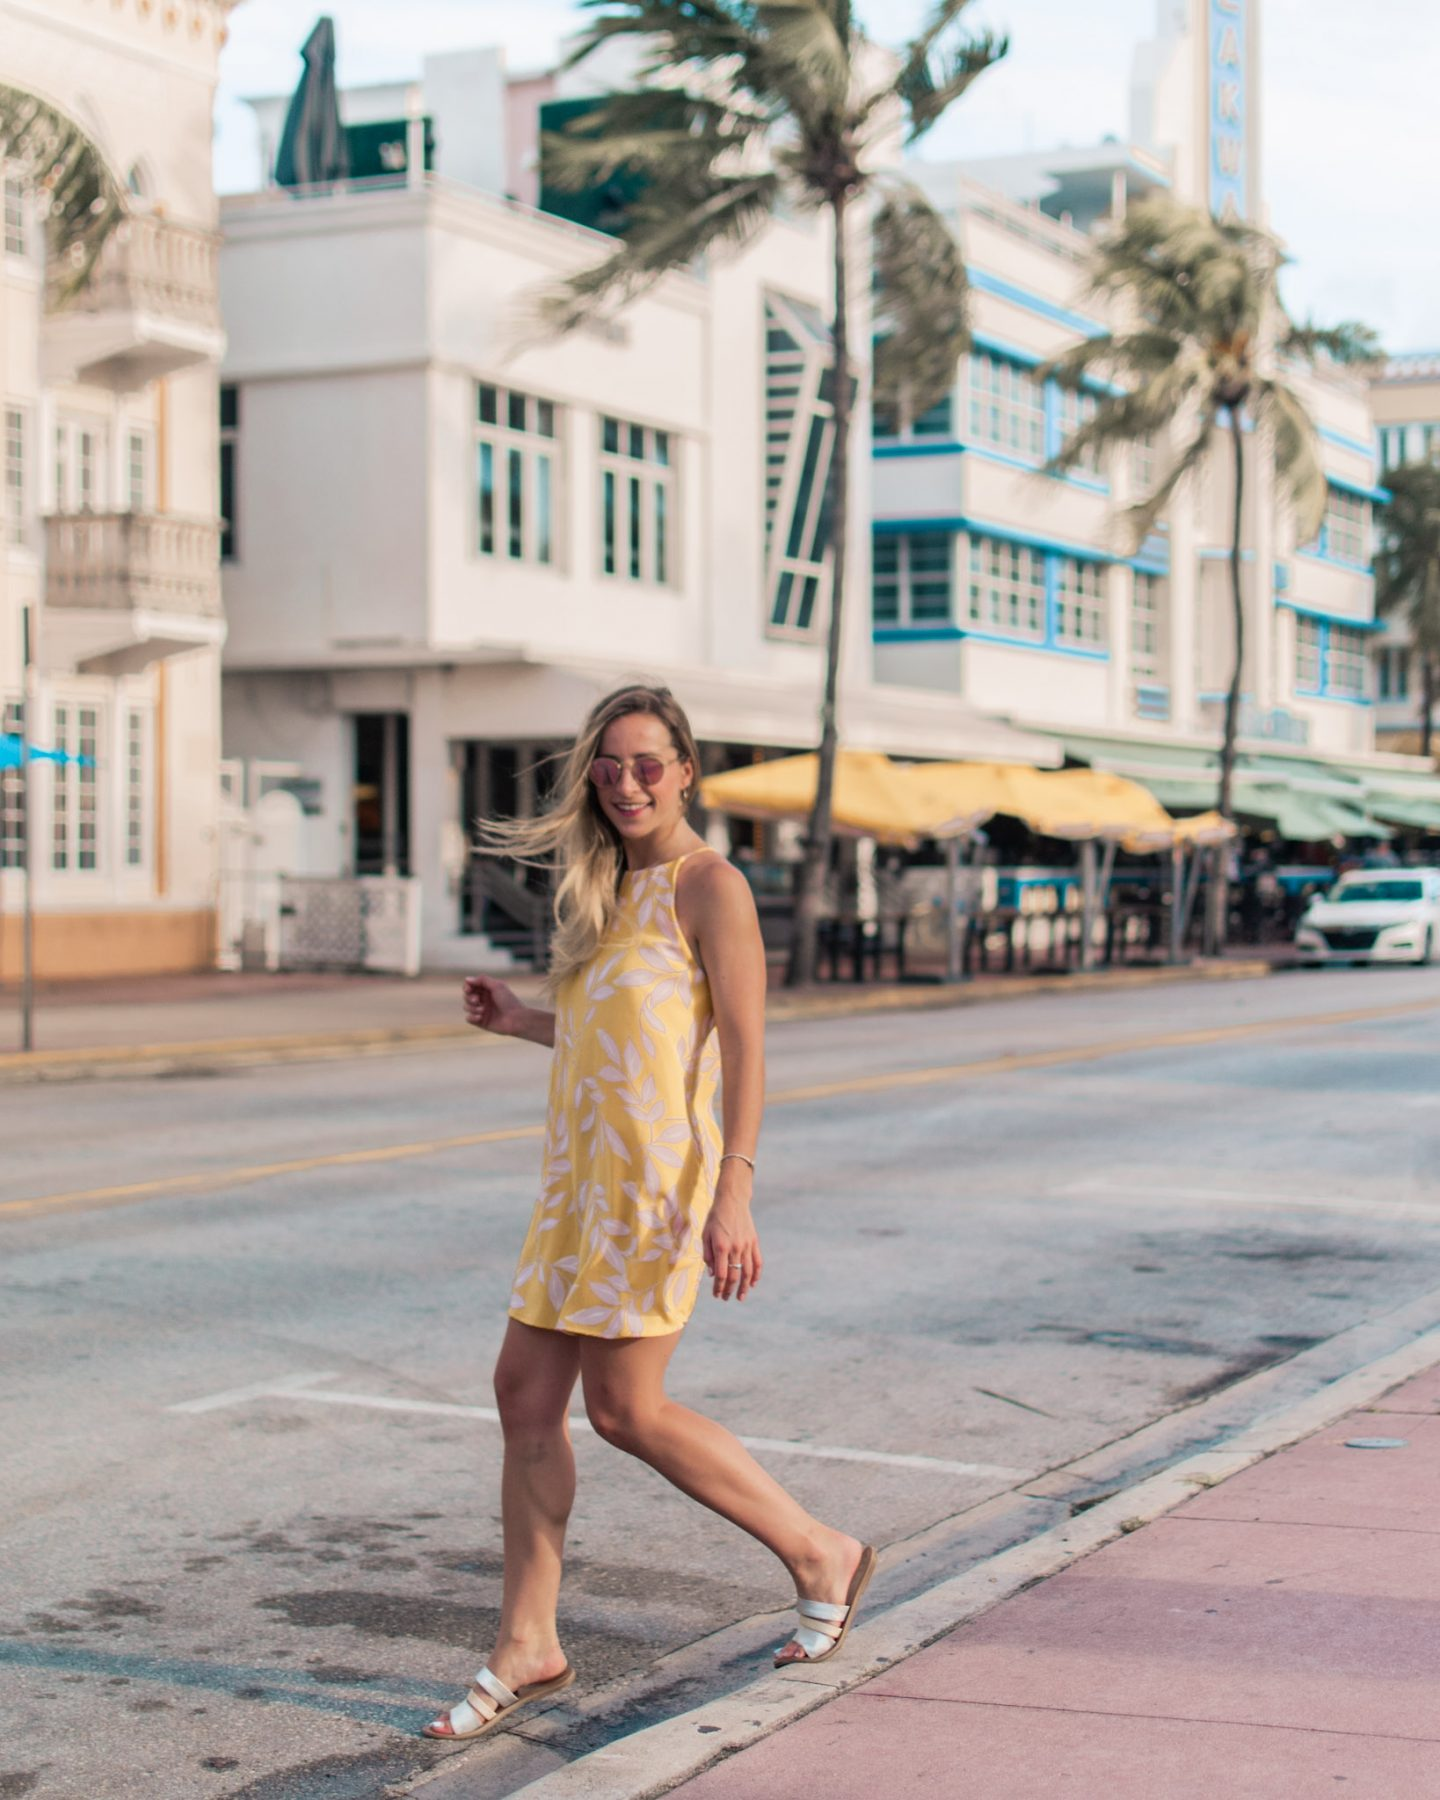 miami travel guide a girl in a yellow dress in south beach